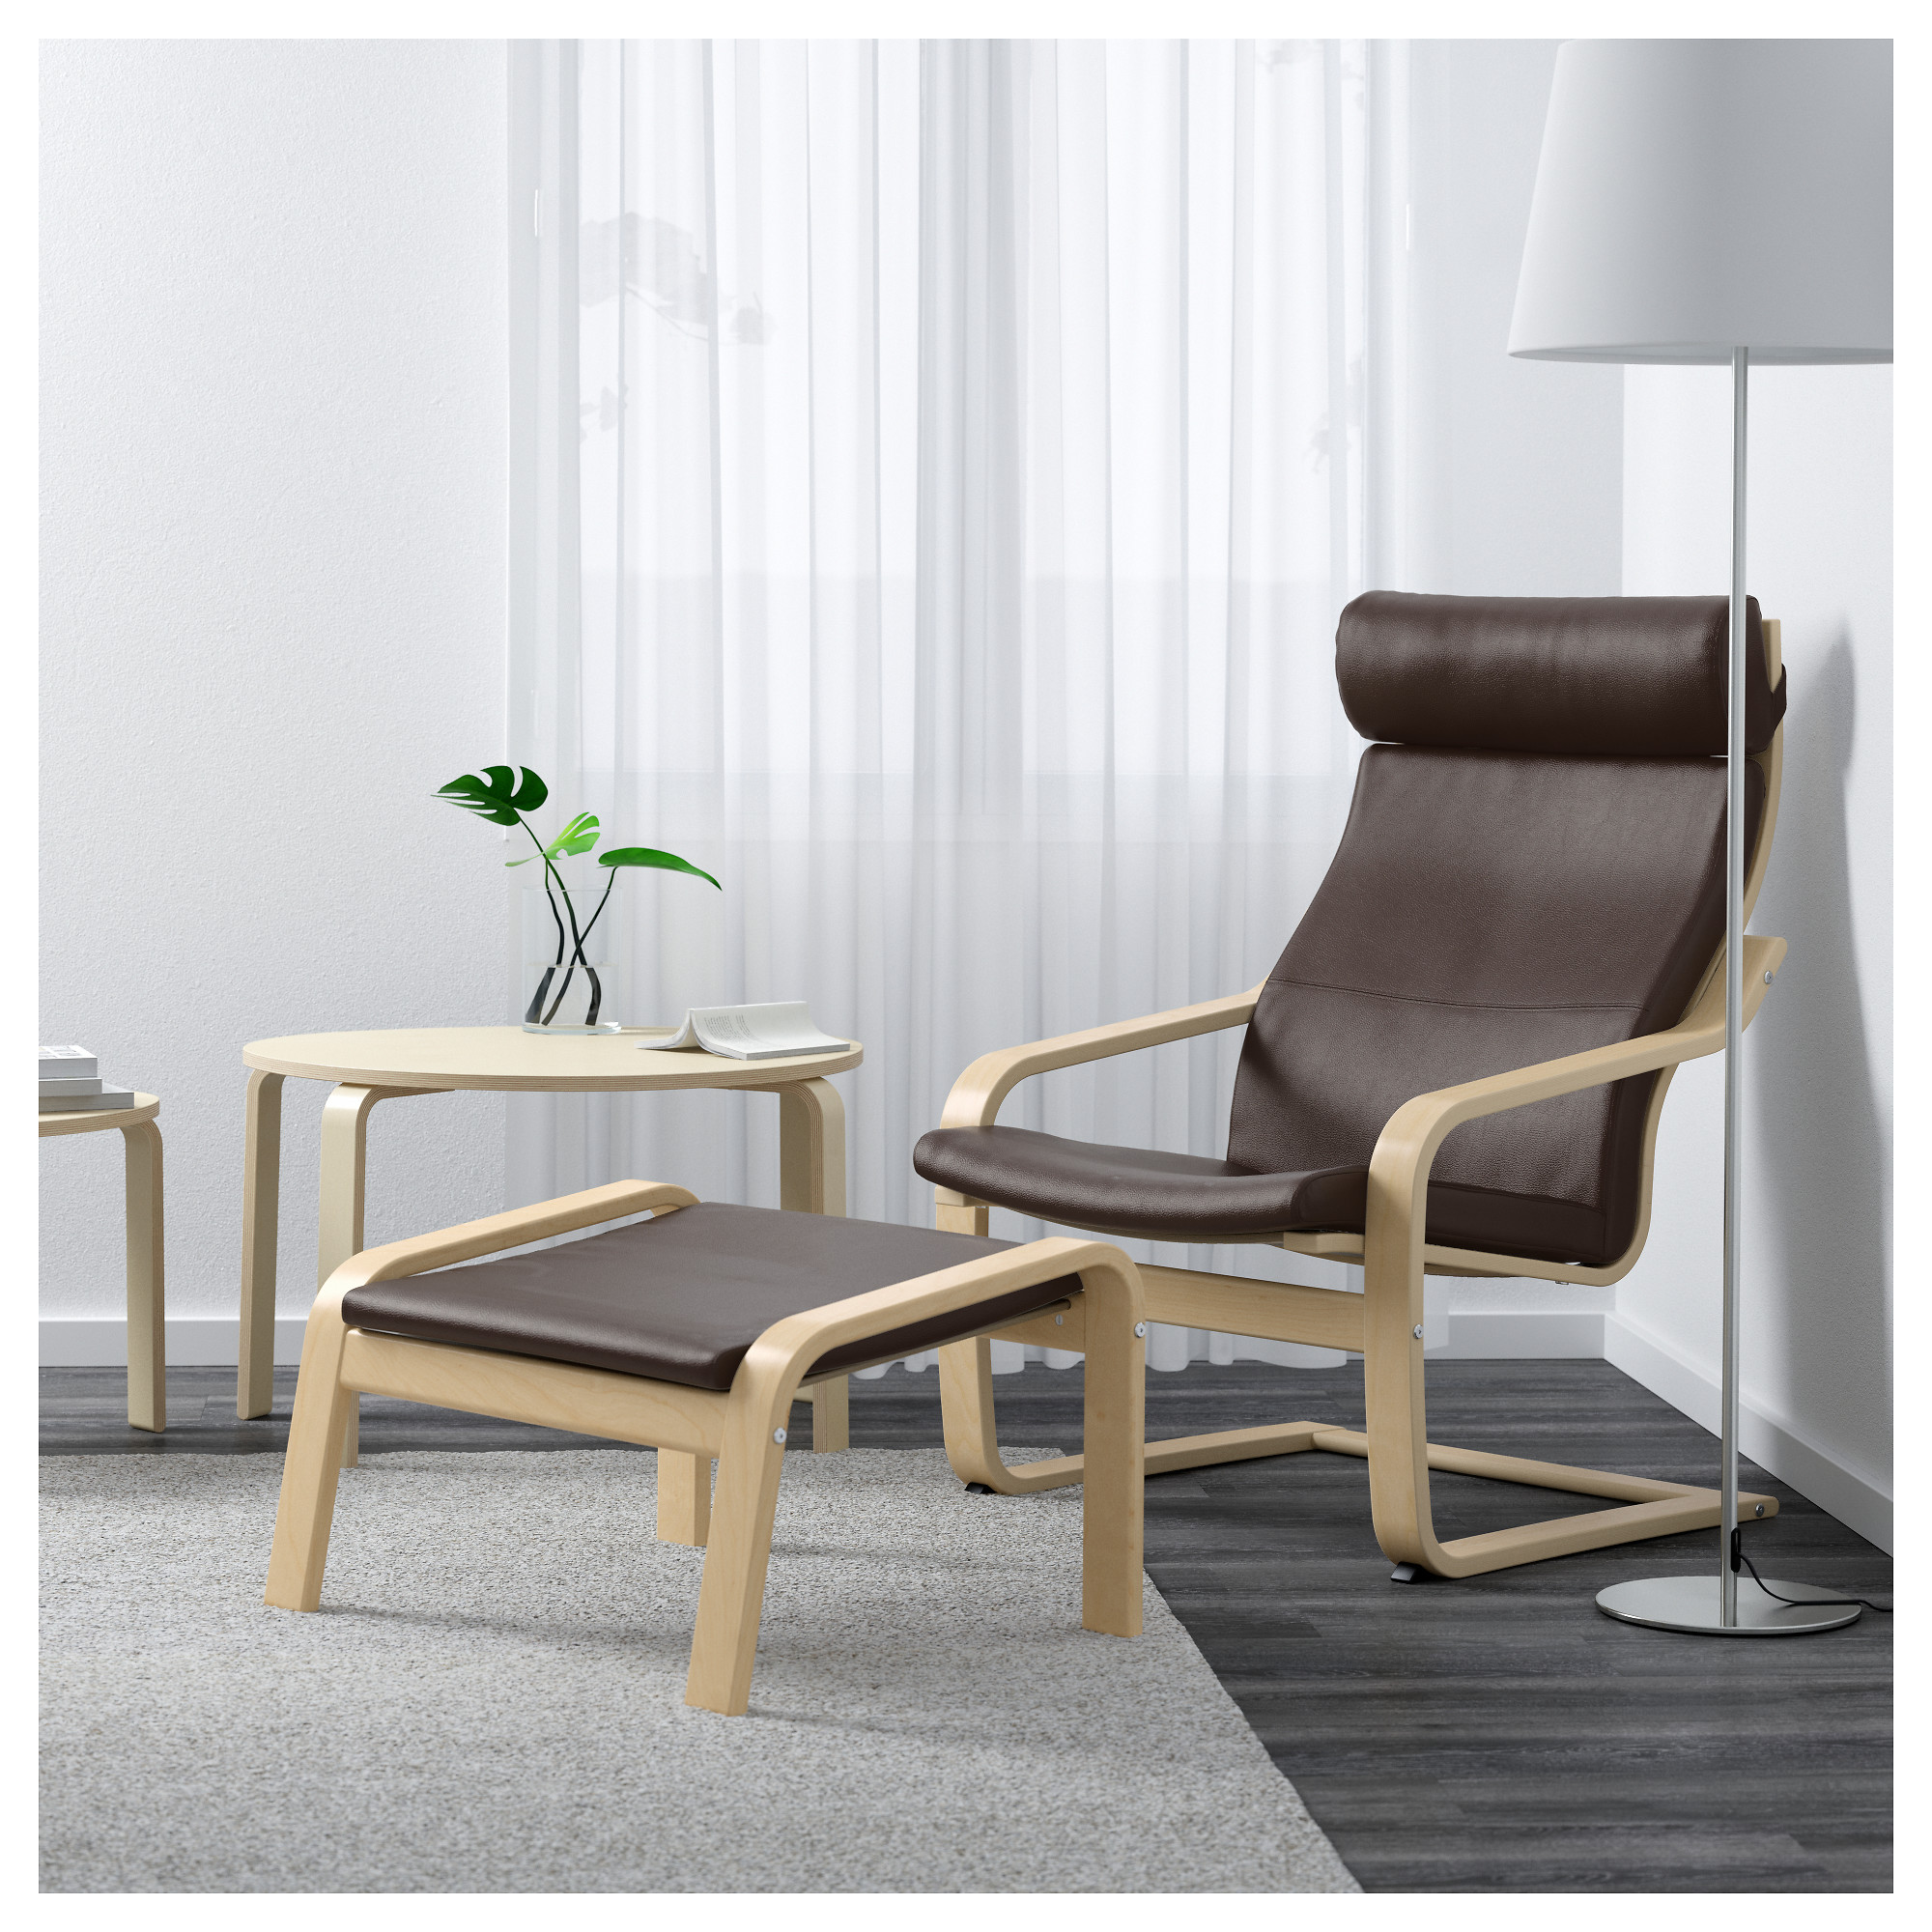 Wondrous Ikea Lithuania Shop For Furniture Lighting Home Machost Co Dining Chair Design Ideas Machostcouk